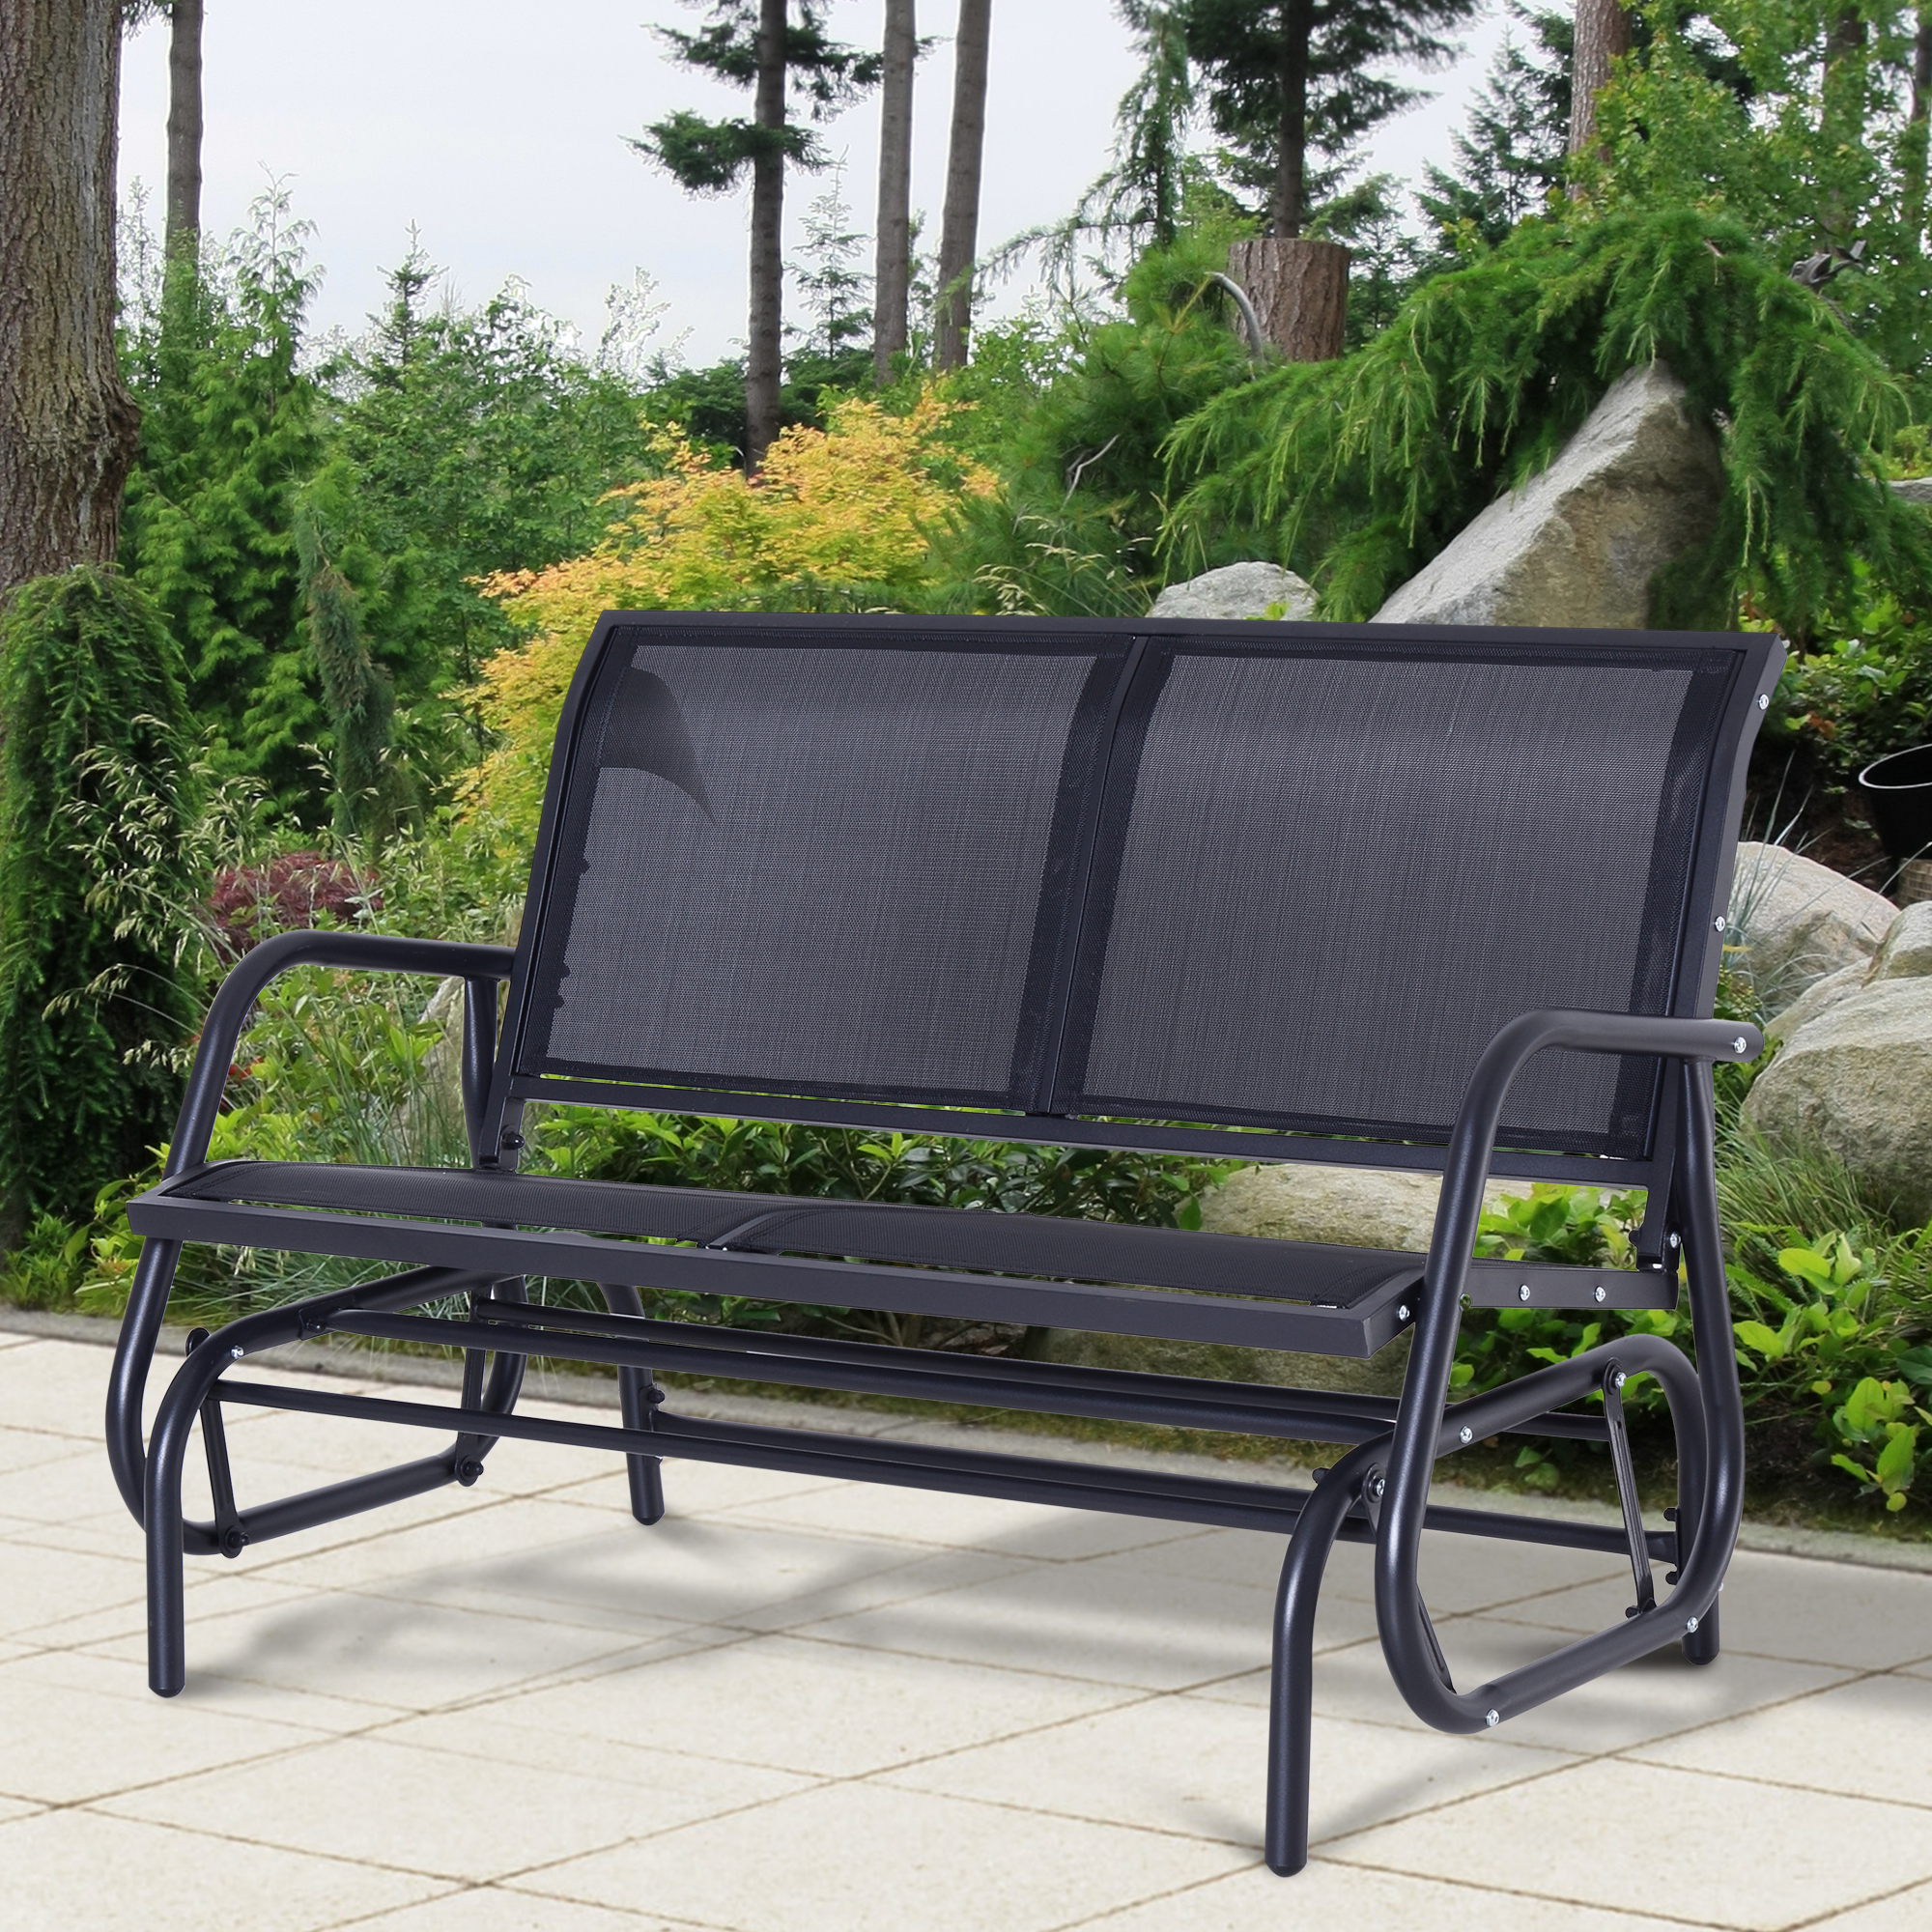 Outdoor Patio Swing Glider Bench Chairs Intended For Well Known Details About Outsunny Patio Garden Glider Bench 2 Person Double Swing Chair Rocker Deck Black (View 9 of 25)